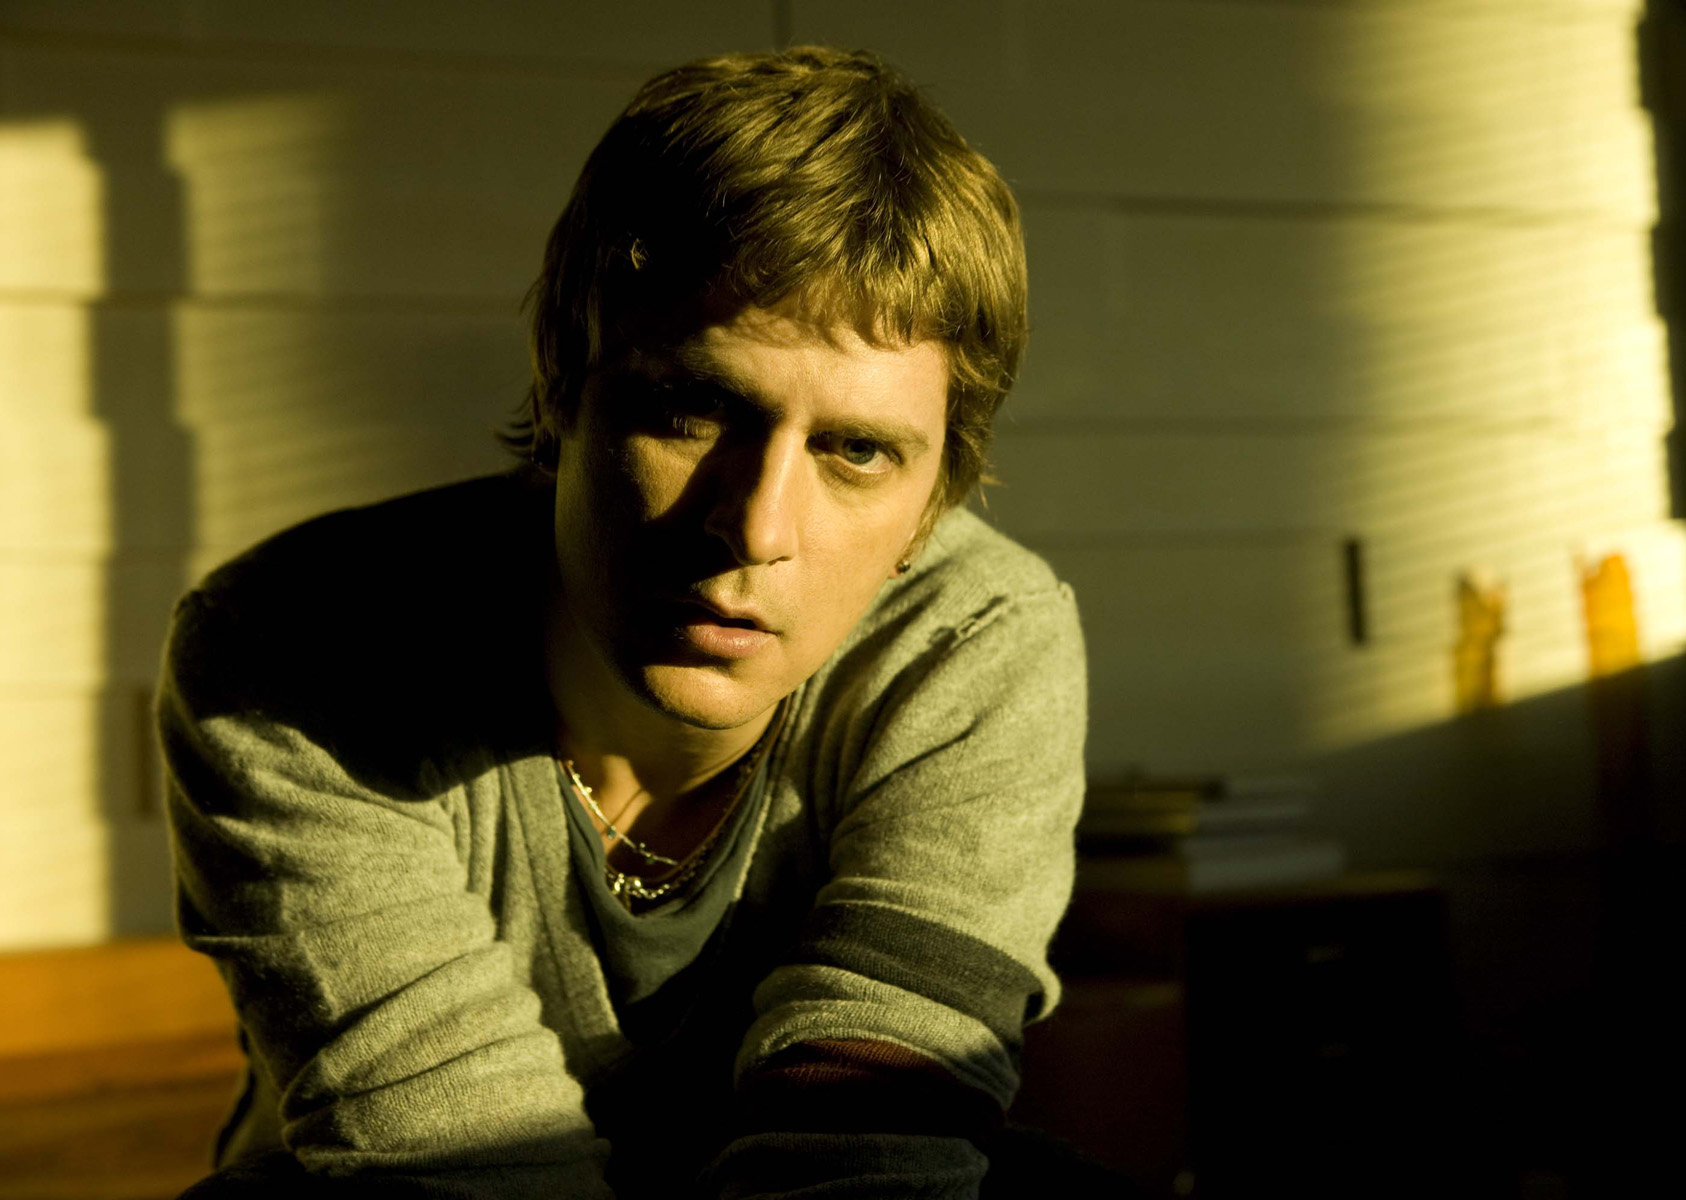 Rob Thomas Set To Perform At The Fox Theatre 10/31